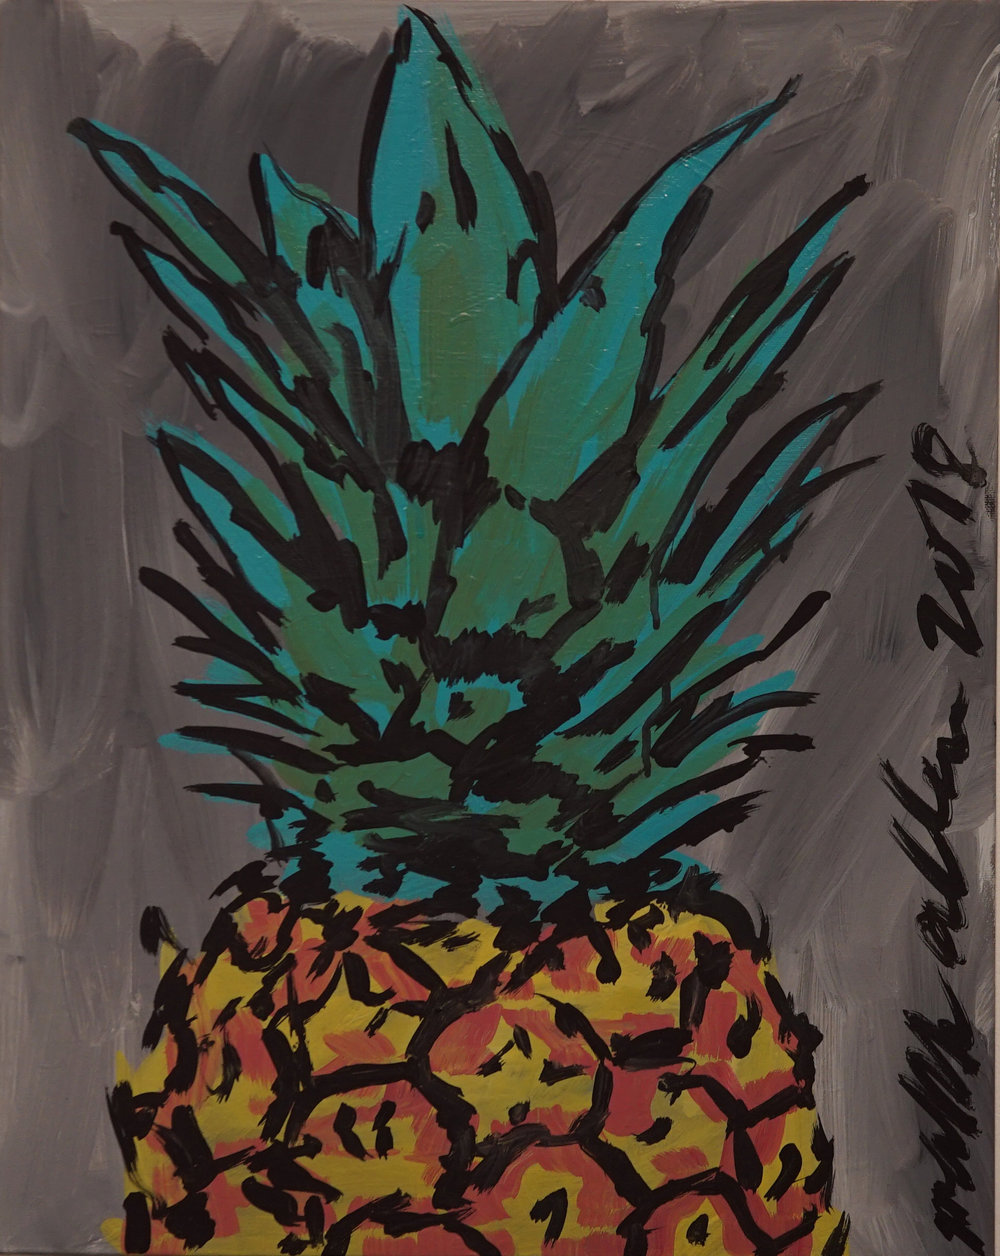 """The Crown of the Pineapple"" (Pineapple series) Acrylic on canvas. 16x20 inches. 2018. $270"